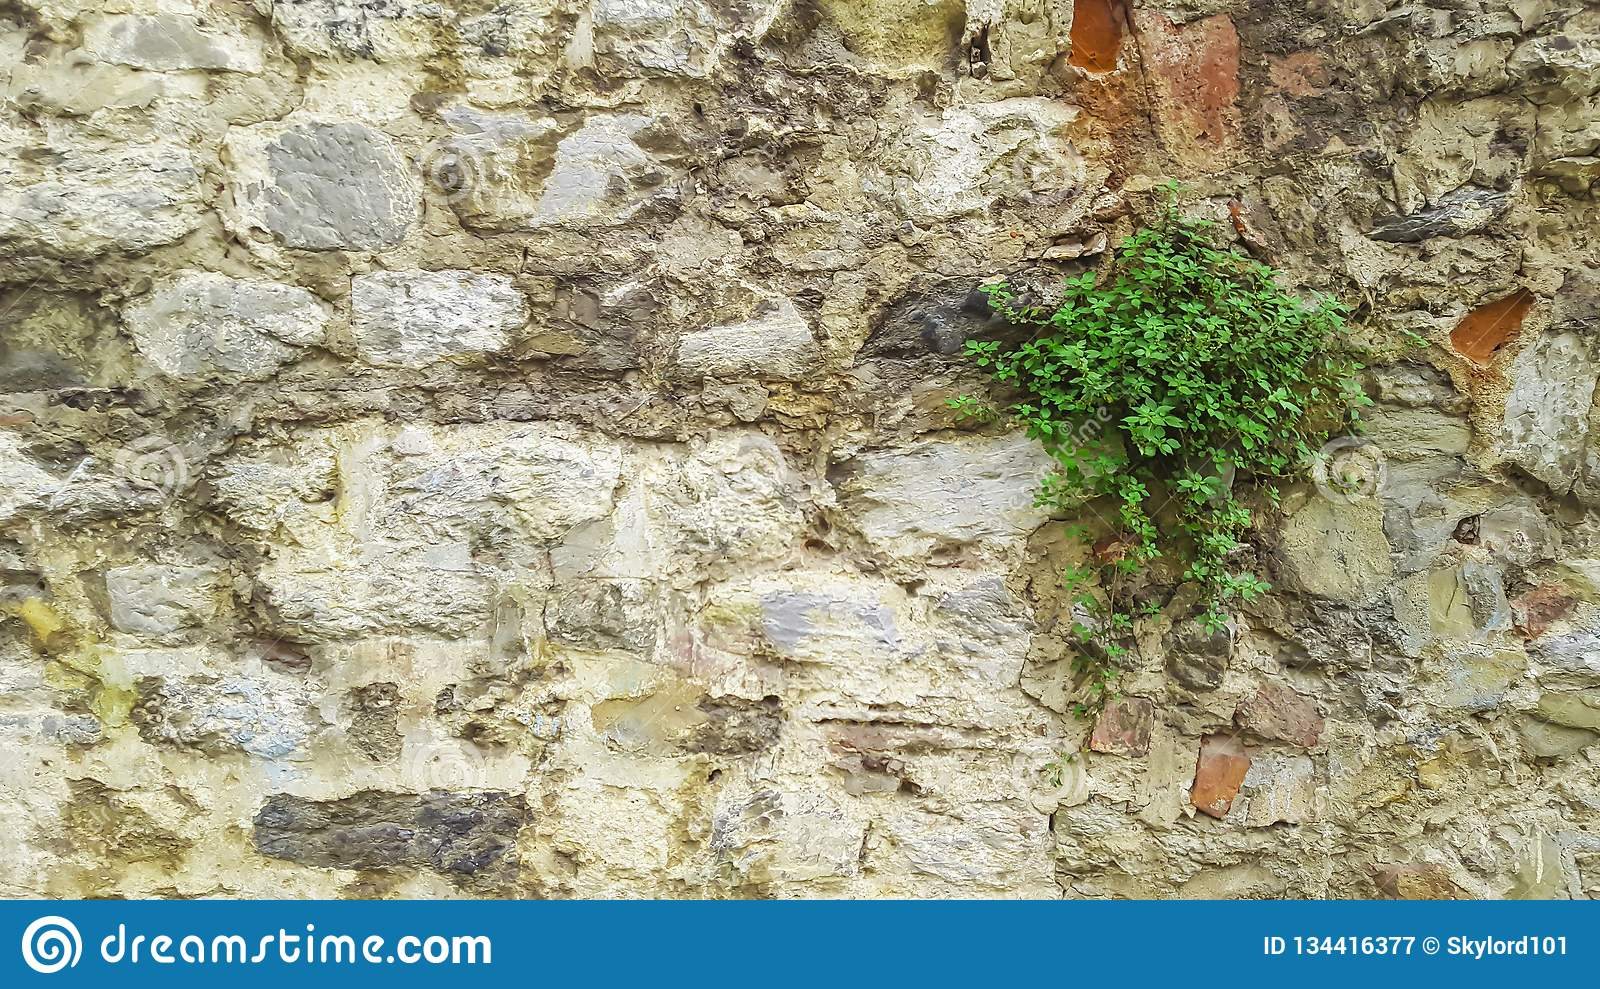 Stone wall with flower plant growing in foreground